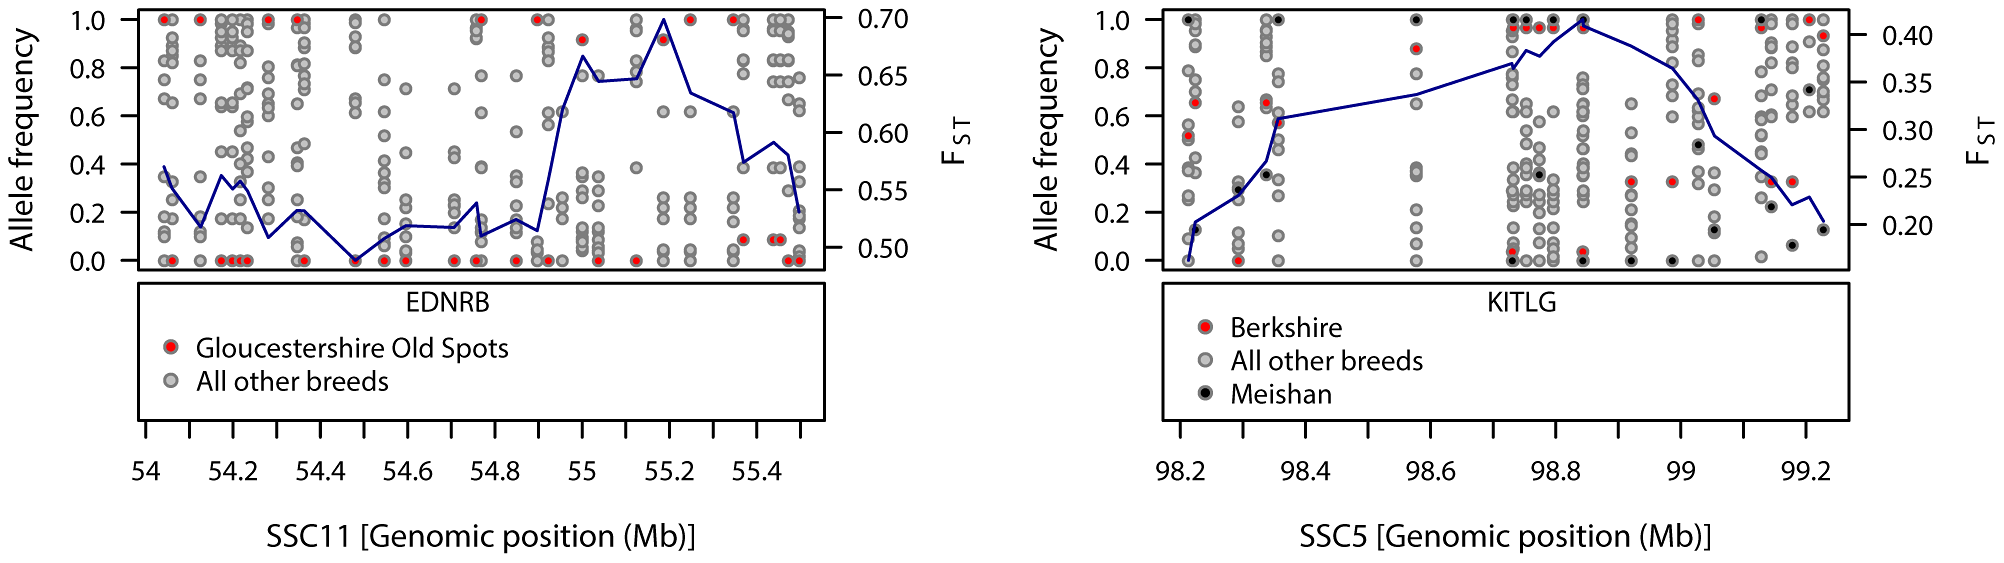 Patterns of genetic variation within regions showing strong signals of diversifying selection in Gloucestershire Old Spots (SSC11) and Berkshire (SSC5).